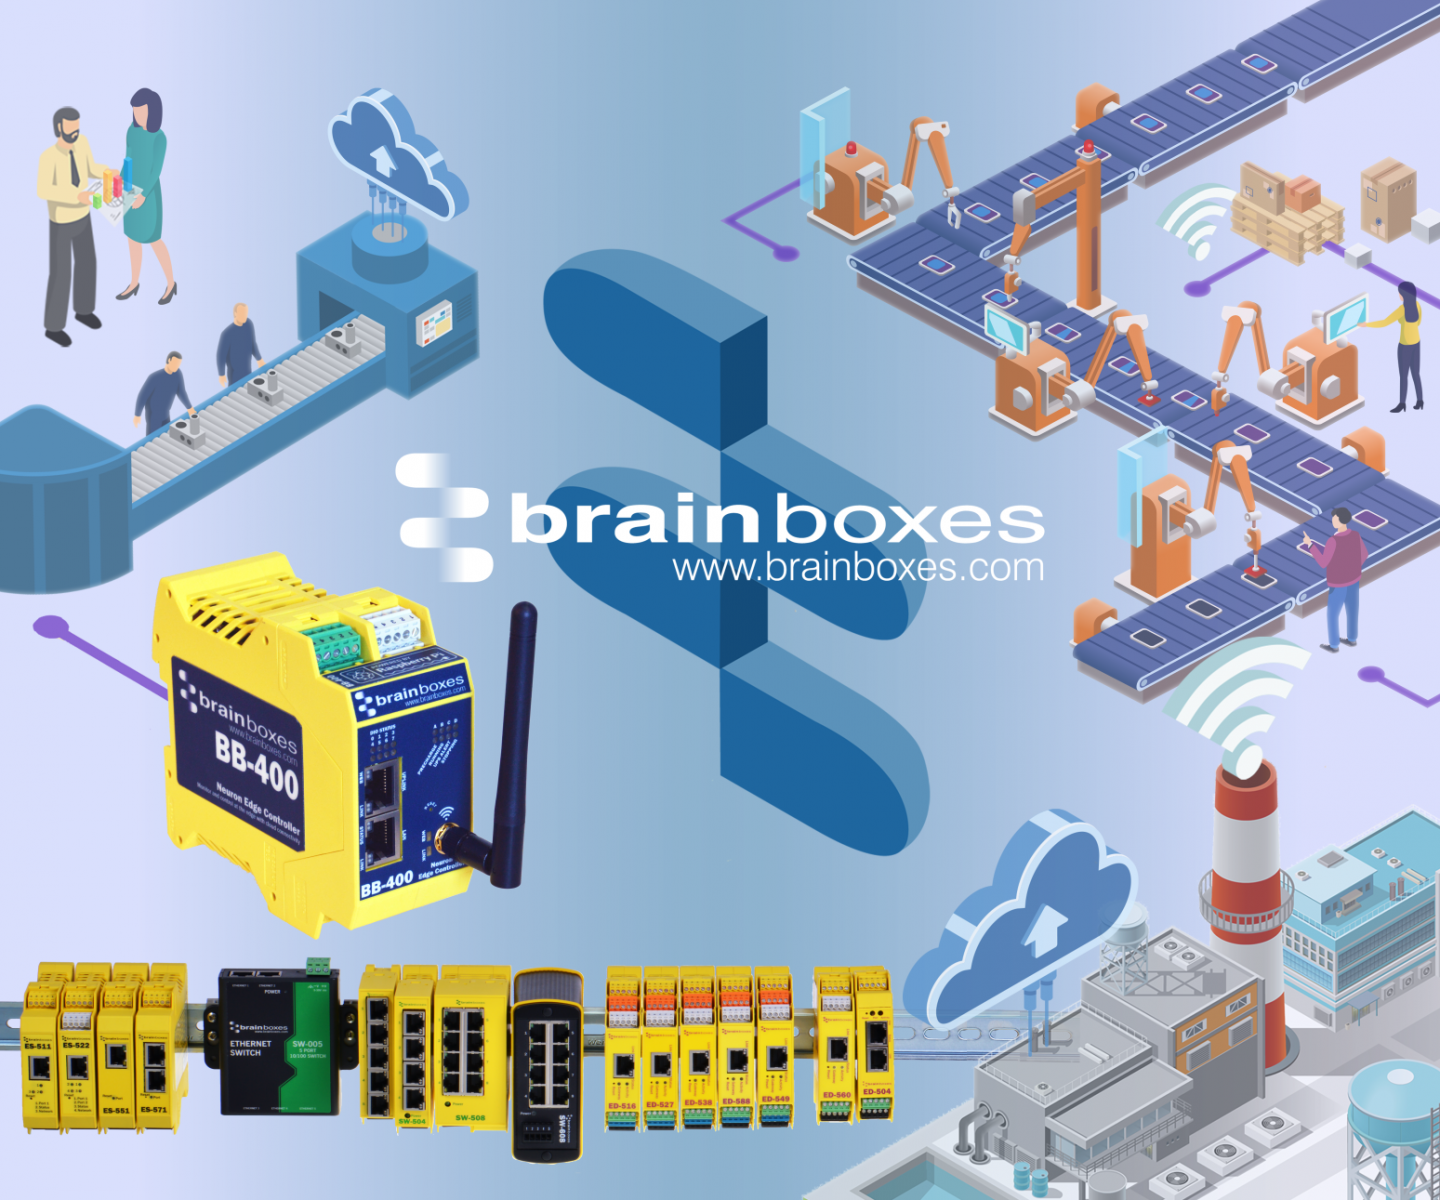 http://www.brainboxes.com/files/pages/support/white-papers-and-presentations/smart-industry-banner-graphic.png